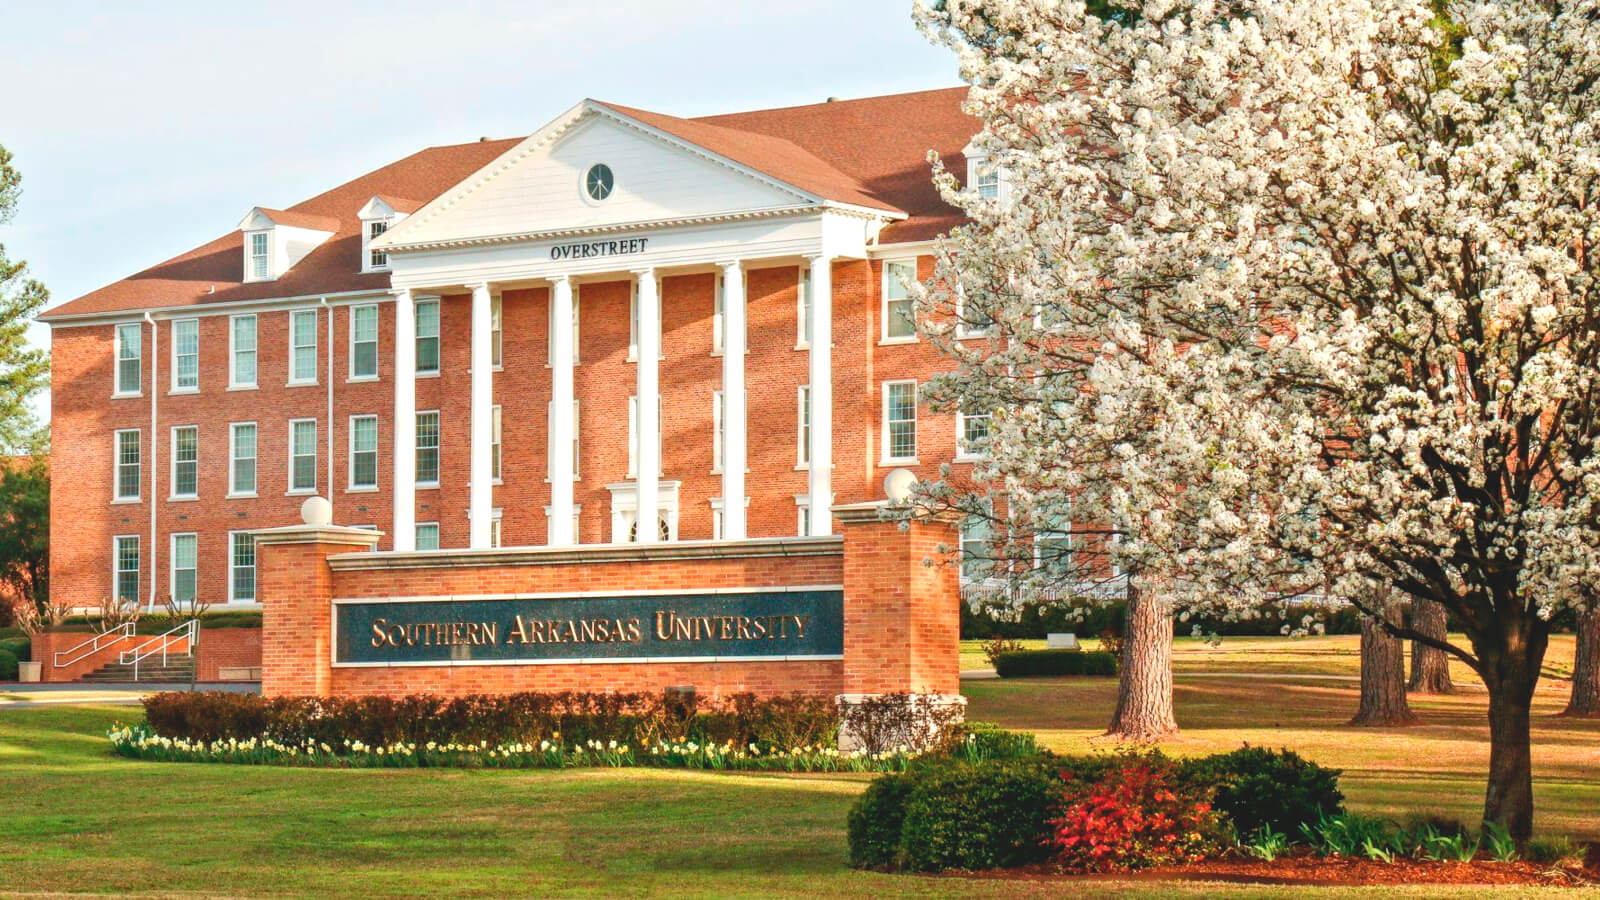 Southern Arkansas University Main Campus